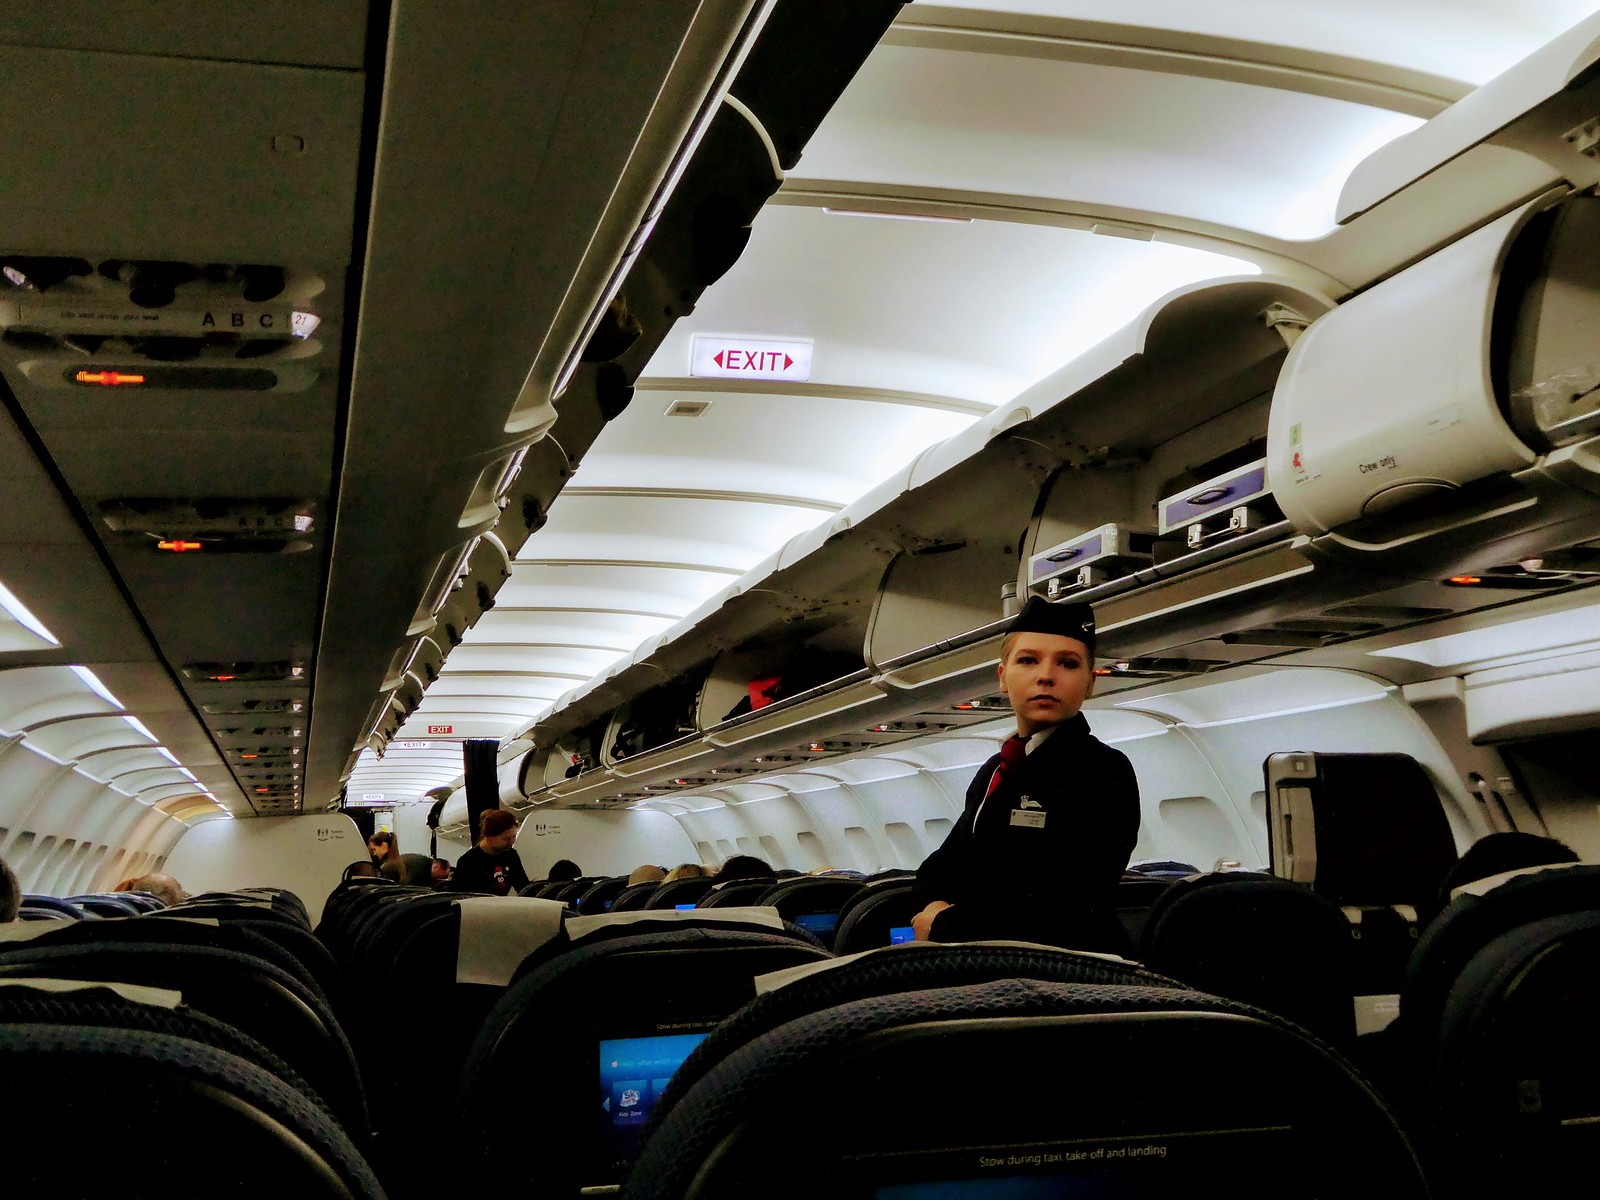 On board the British Airways A321 airliner